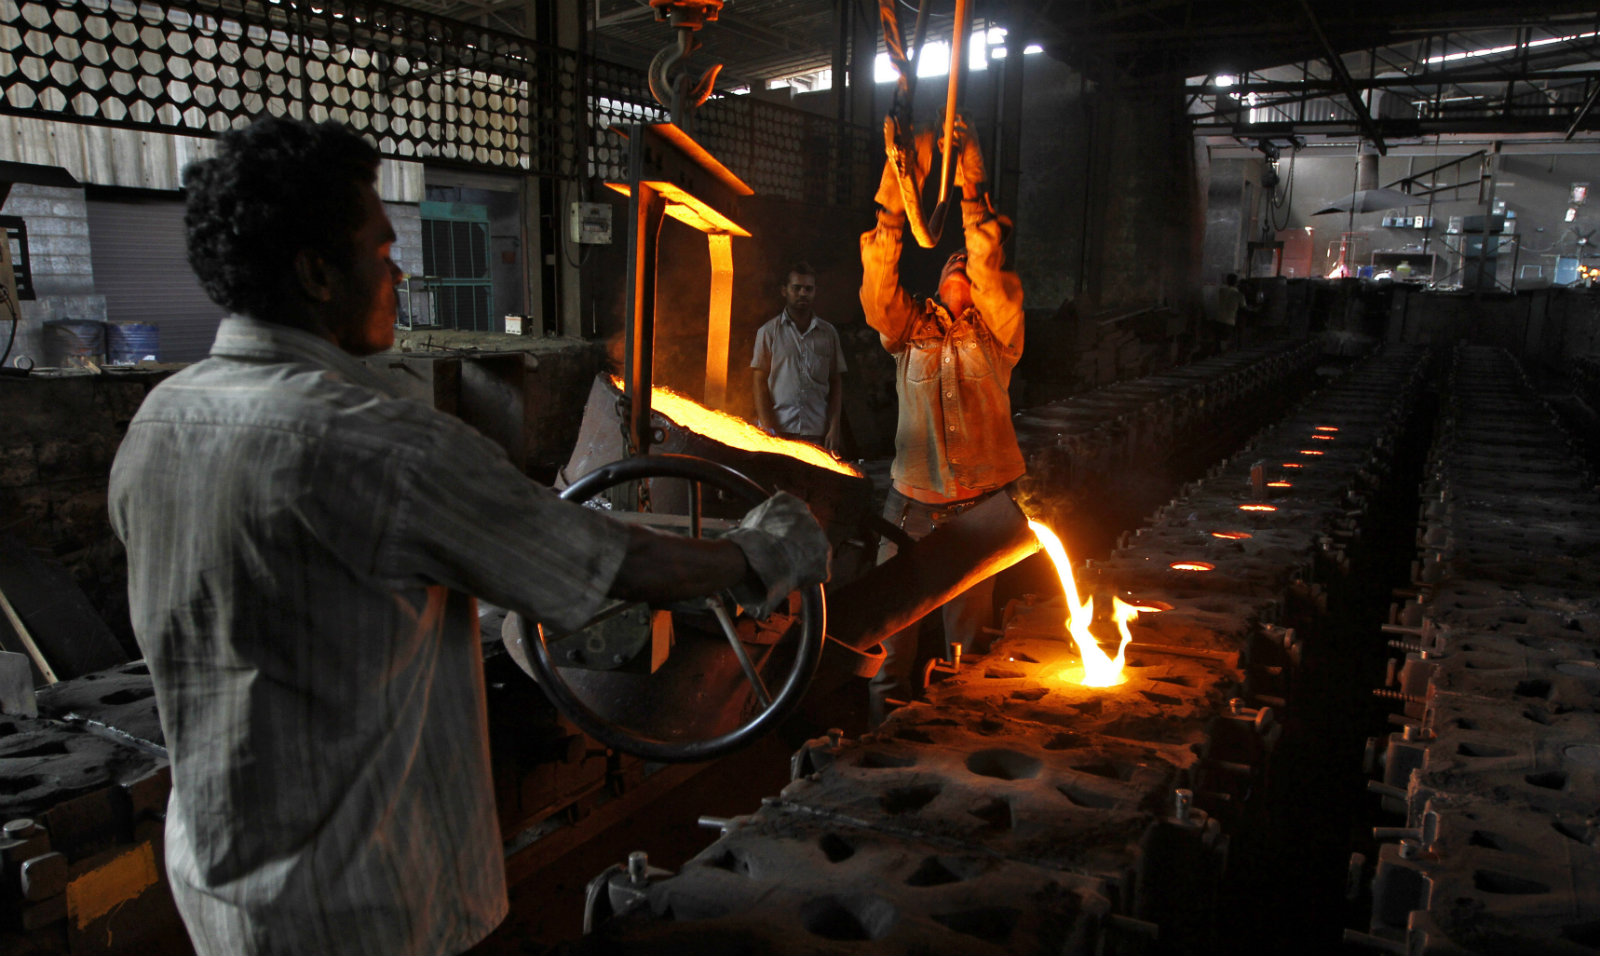 India's steel sector is getting in the way of its climate action goals